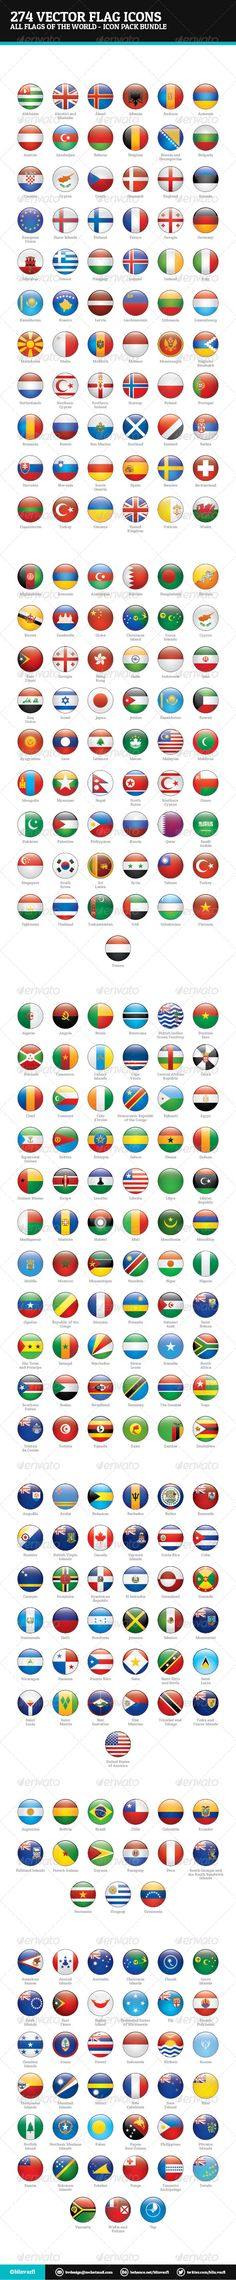 World Flags Vector - Icon Bundle #GraphicRiver World Flags Vector – Web Icons Bundle World Flags Vector Icon Bundle are a pack of 274 national flags icons. Icon pack includes these nations: Abkhazia, Akrotiri and Dhekelia, Aland, Albania, Andorra, Armenia, Austria, Azerbaijan, Belarus, Belgium, Bosnia and Herzegovina, Bulgaria, Croatia, Cyprus, Czech, Denmark, Estonia, Europe, Faroe Islands, Finland, France, Georgia, Germany, Giblartar, Greece, Hungary, Iceland, Ireland, Italy, Kazakhstan…